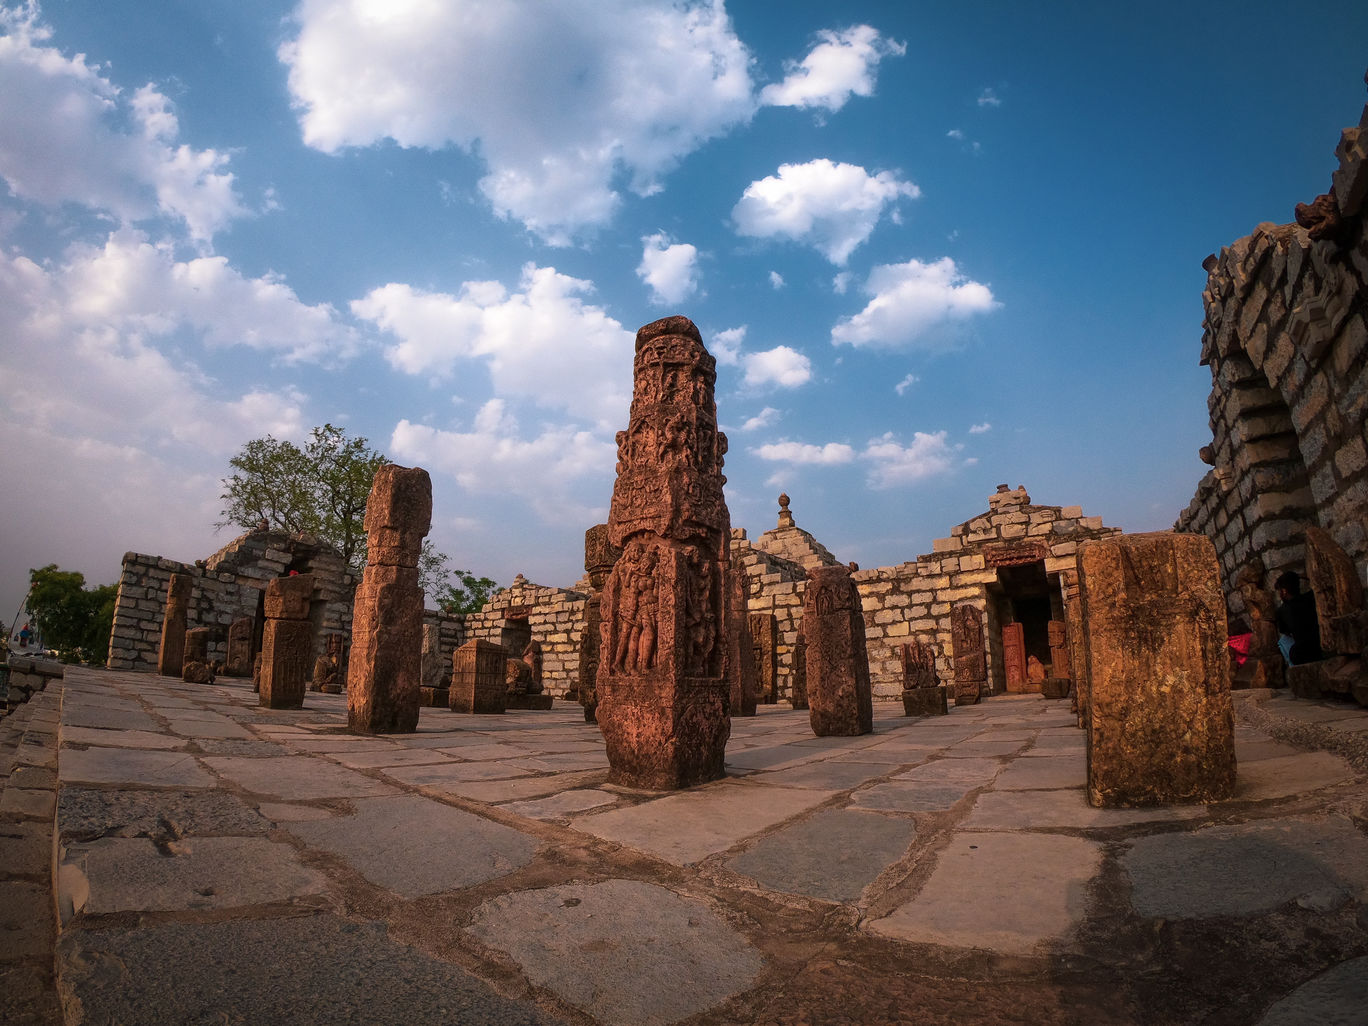 Photo of Sirpur By Amrit Goswami